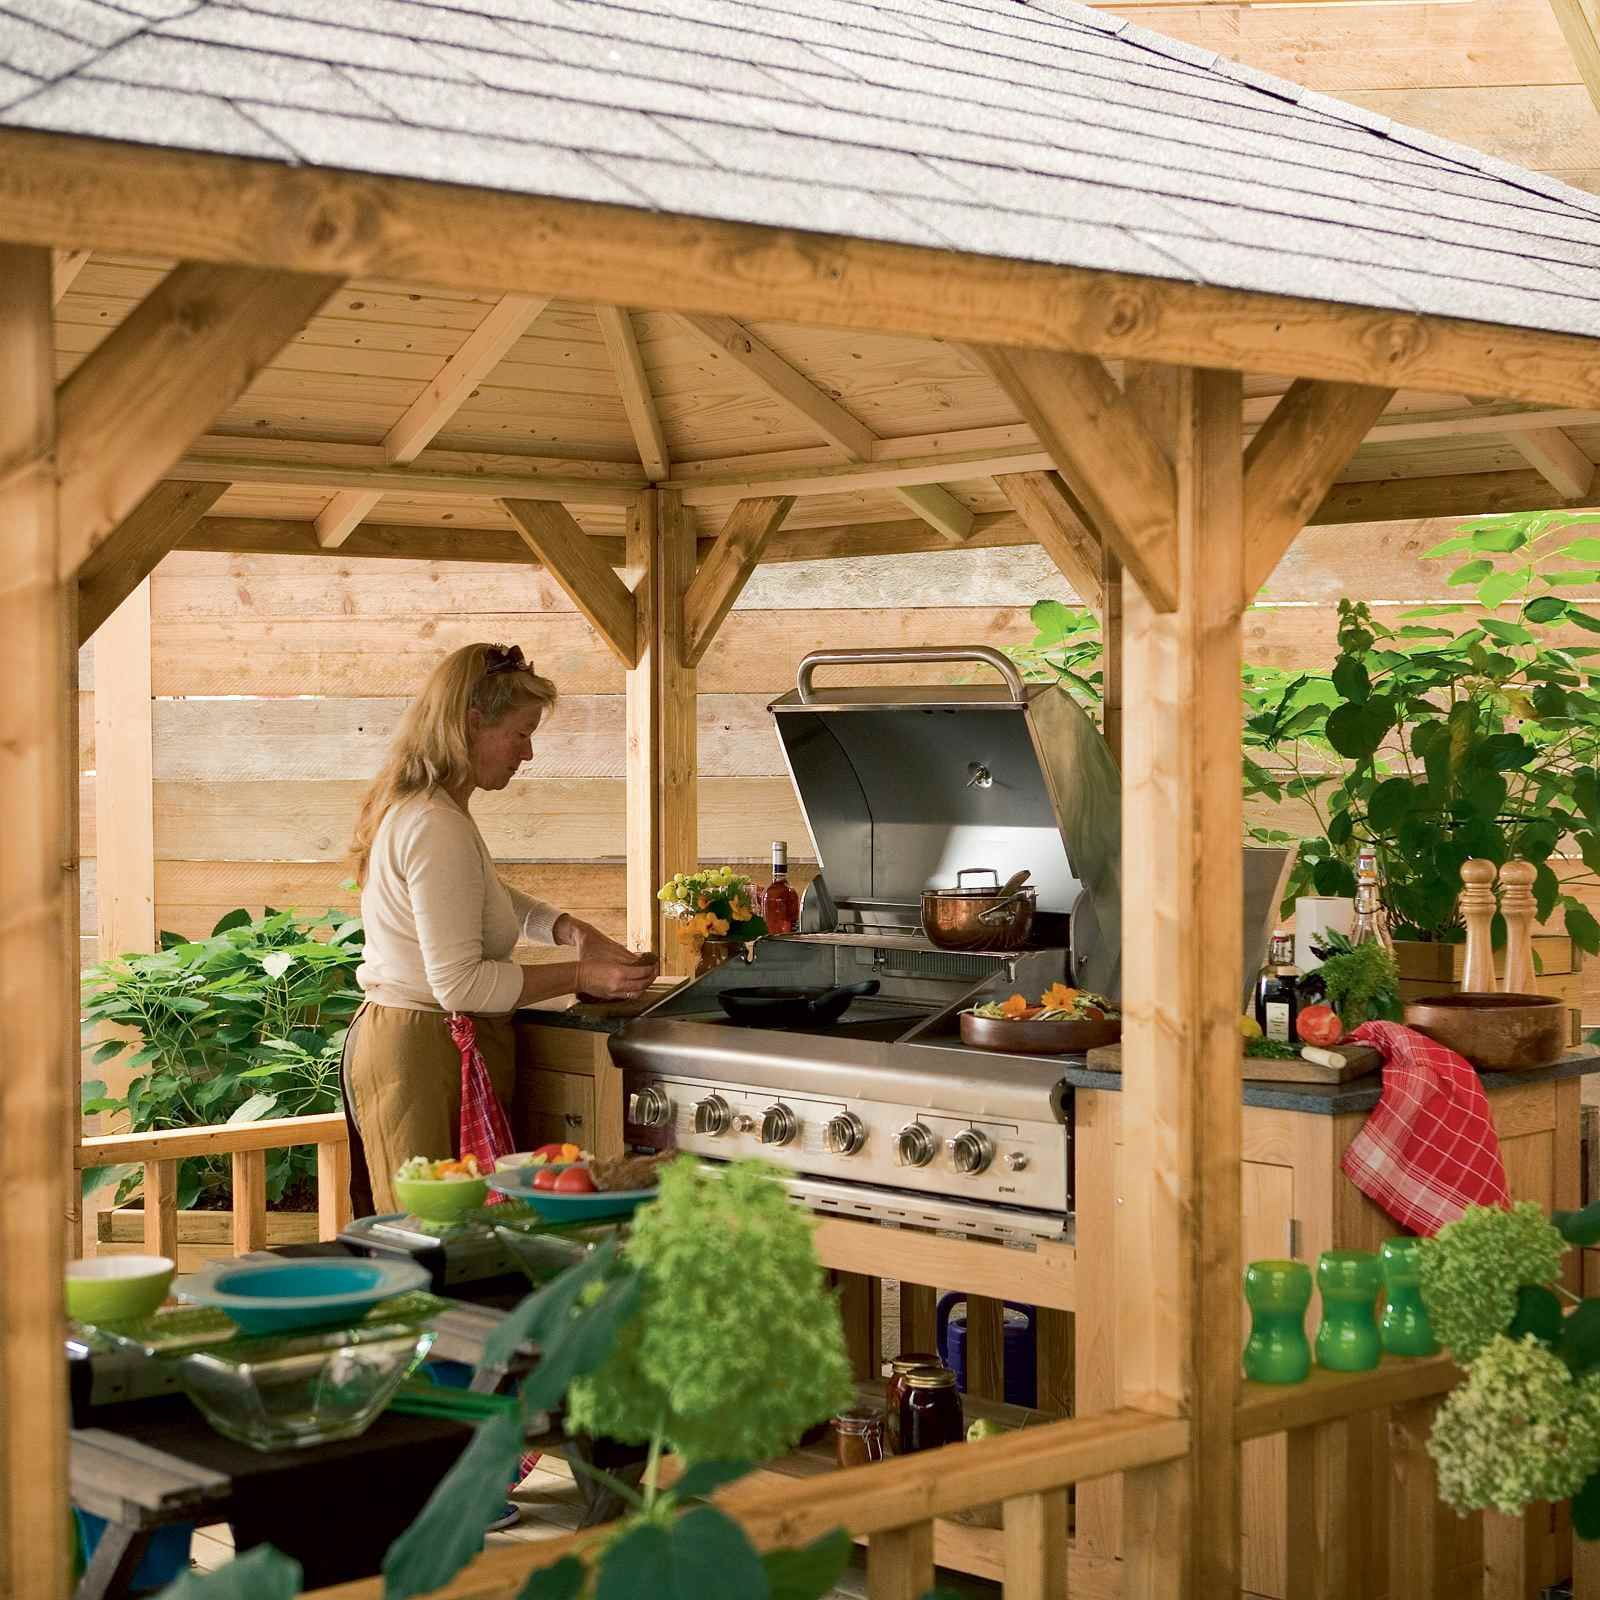 Italian Outdoor Kitchen Our Newly Constructed Outdoor Cooking Area For Big Green Egg And